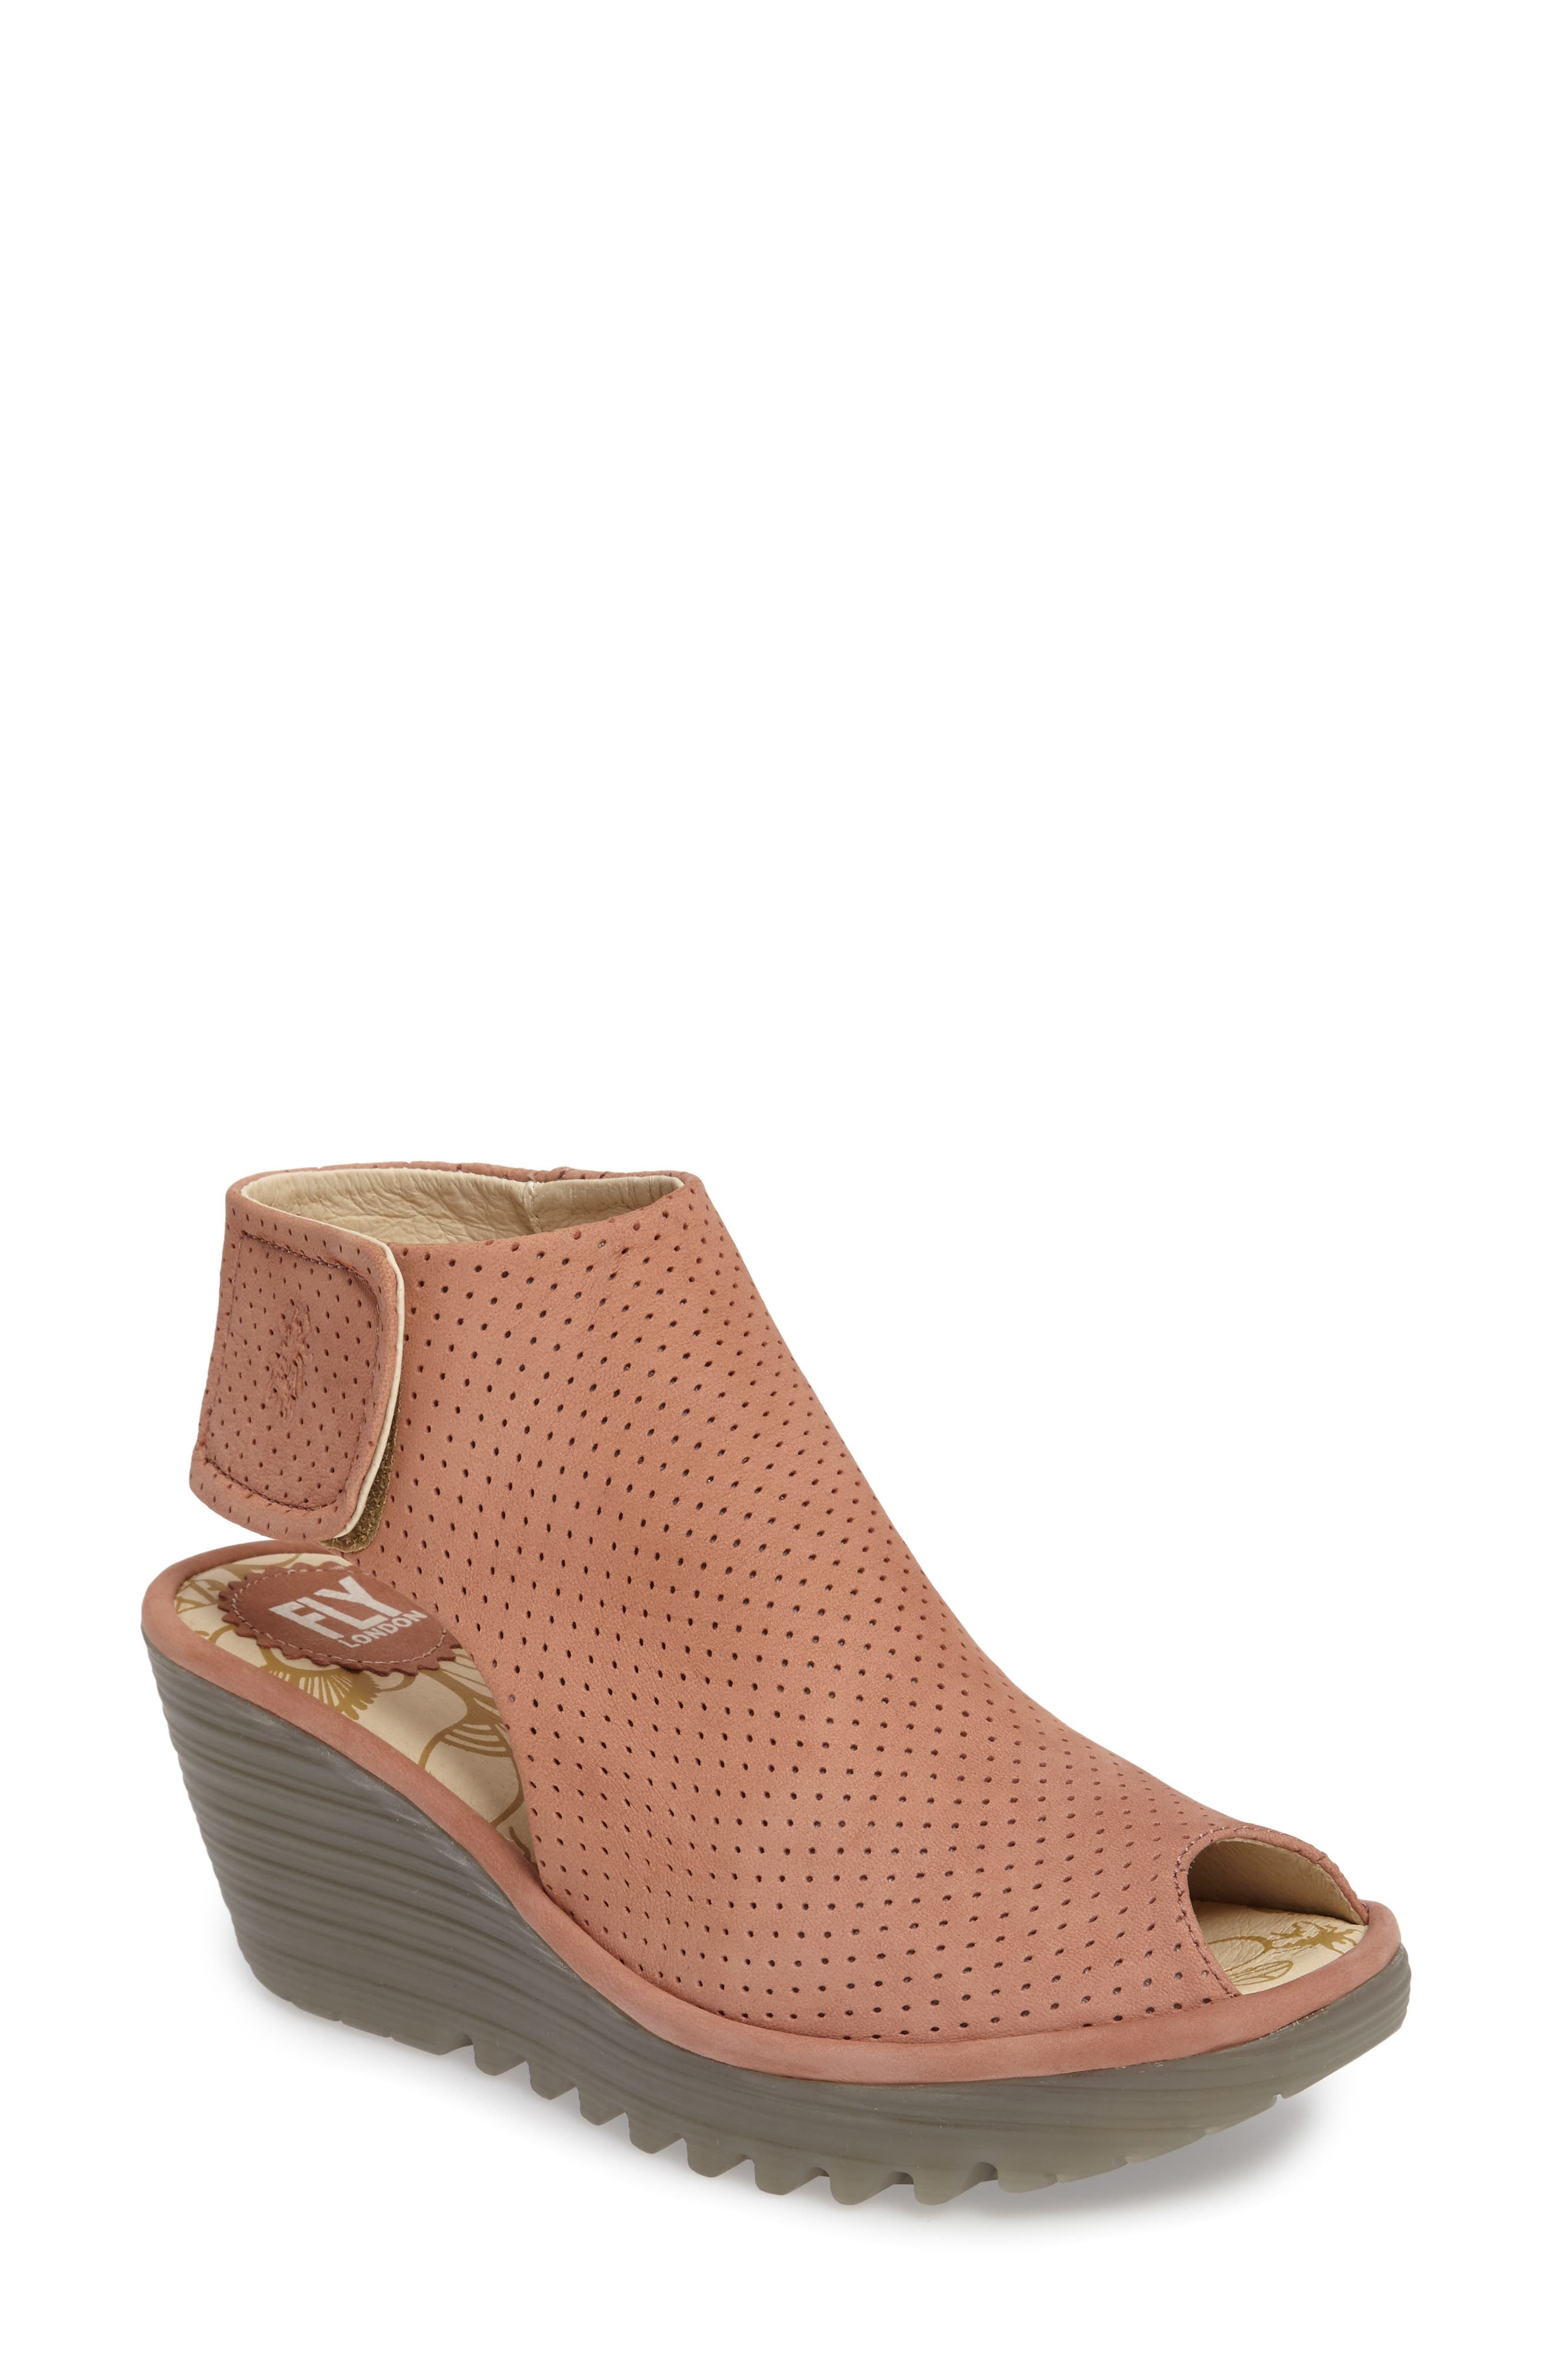 FLY LONDON Yahl Open Toe Platform Wedge